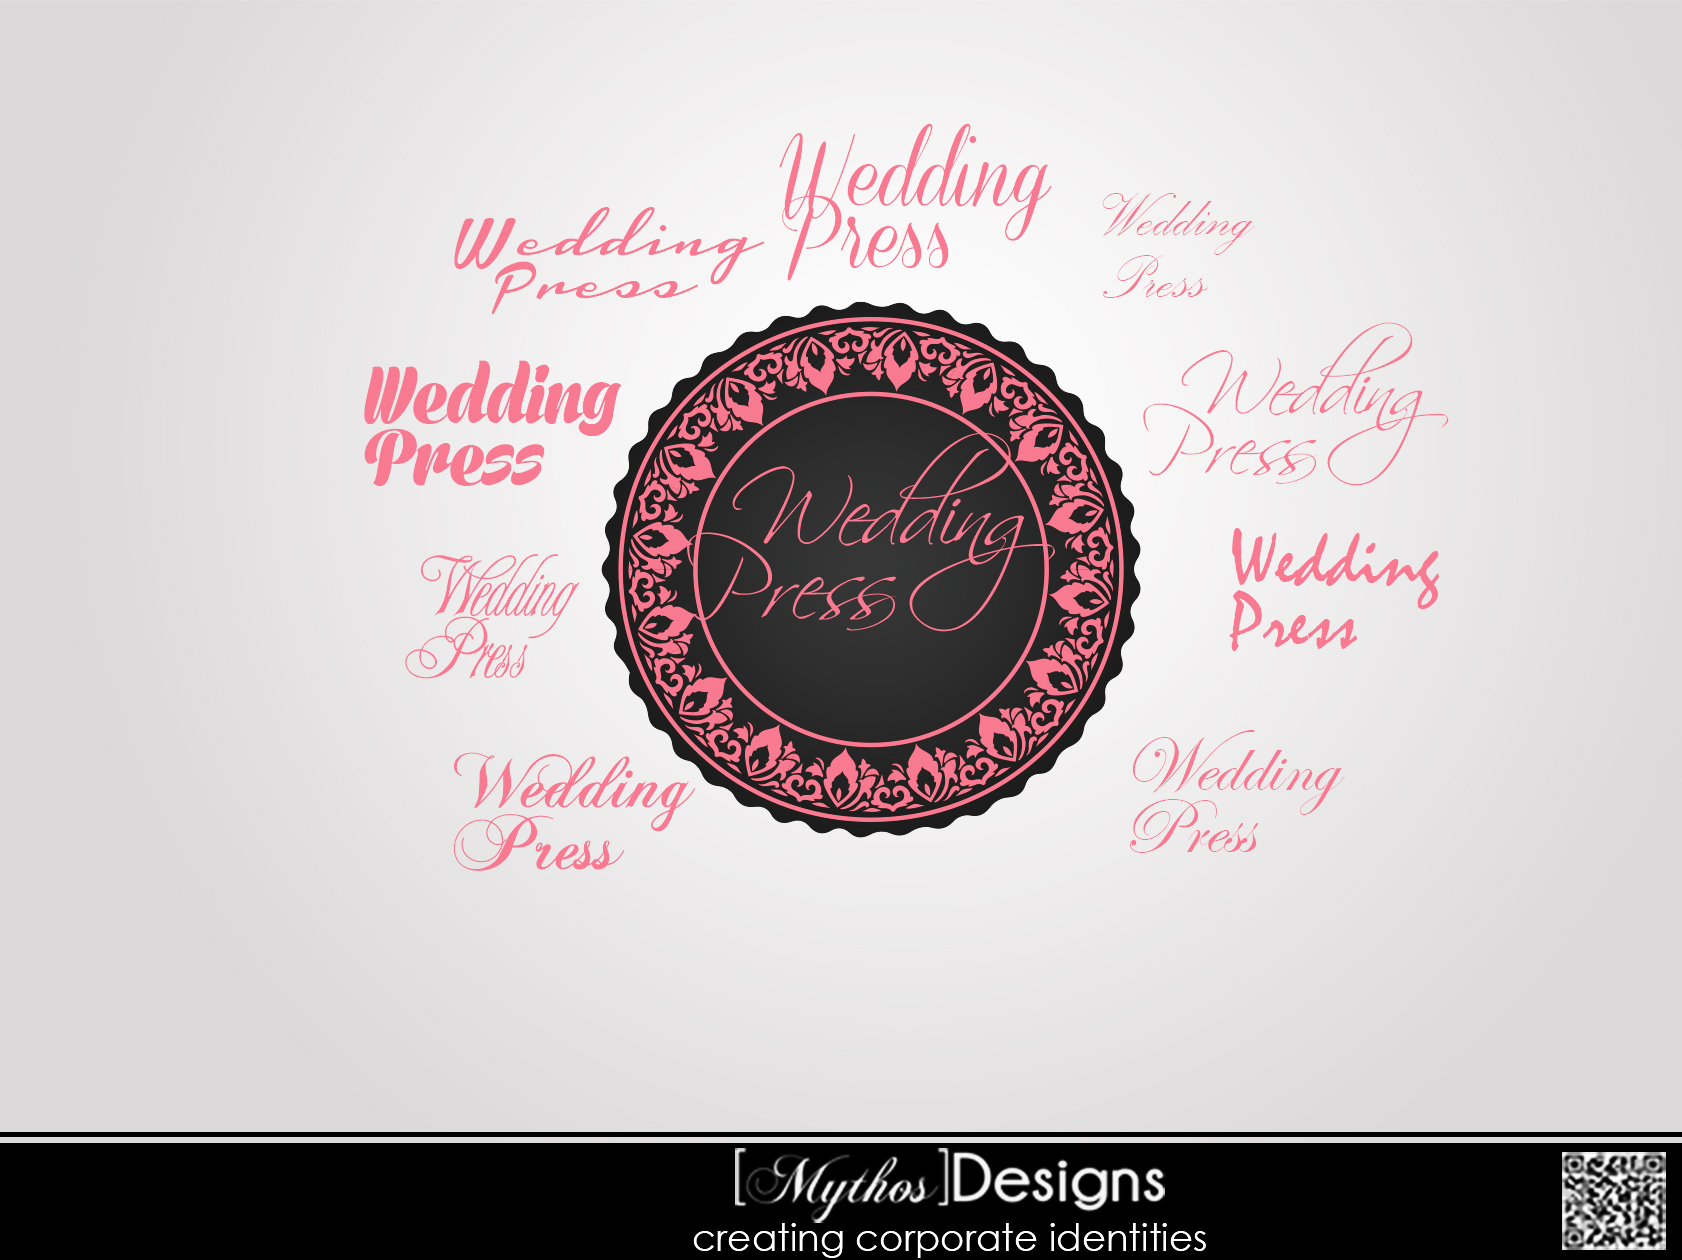 Logo Design by Mythos Designs - Entry No. 34 in the Logo Design Contest Wedding Writes Logo Design.